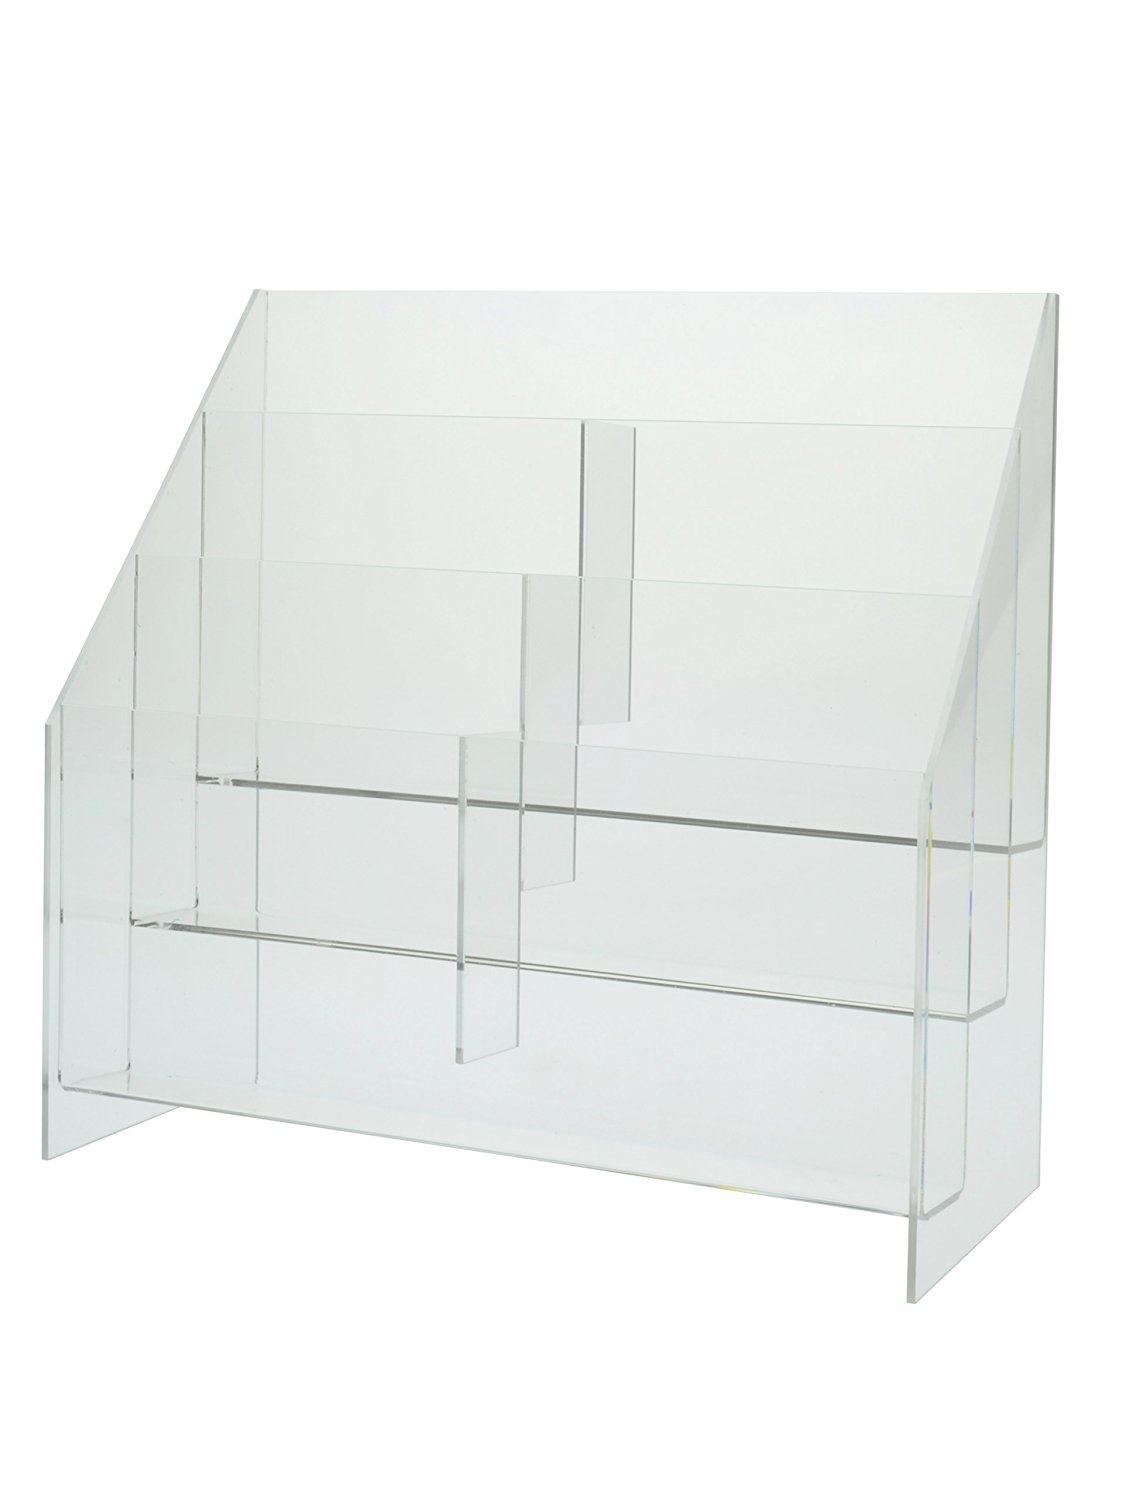 Marketing Holders Brochure Holder -Clear Acrylic, Three Tier, Six Pocket, Upright, Free Standing Design Holds 5.5 X 11 Literature - Sold in Lots of 4